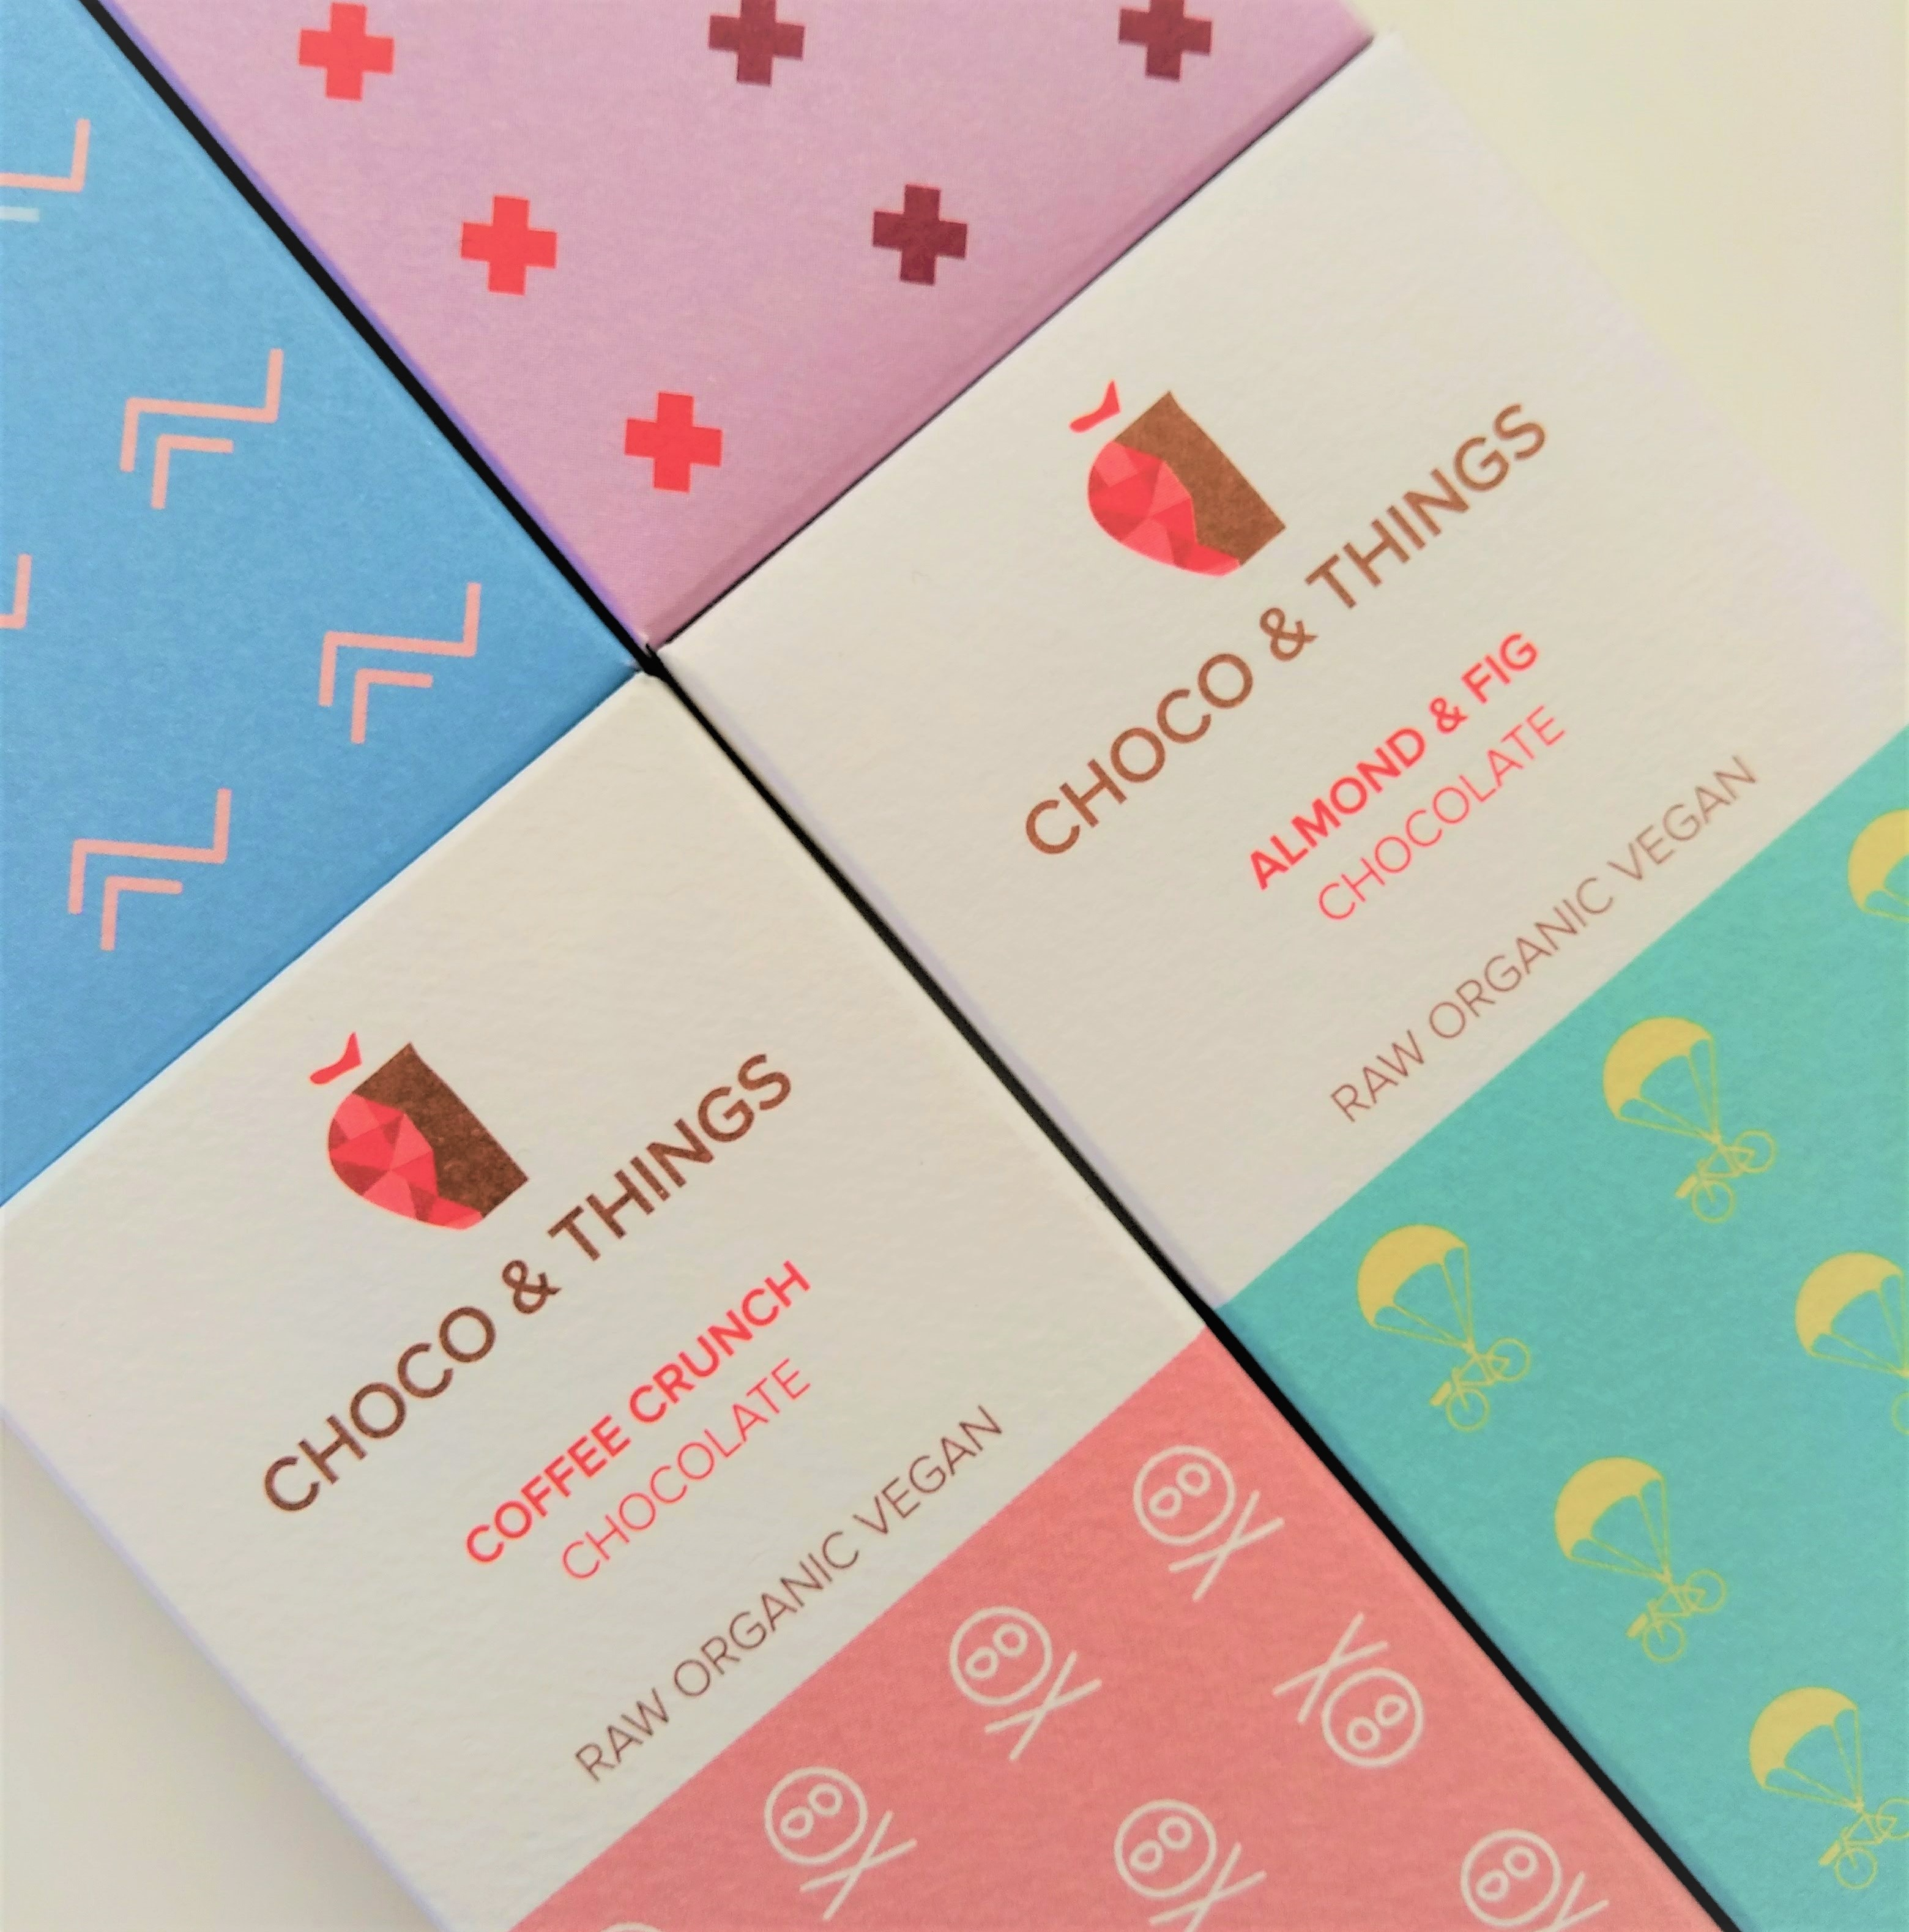 Choco & Things: raw, organic, vegan & Dutch